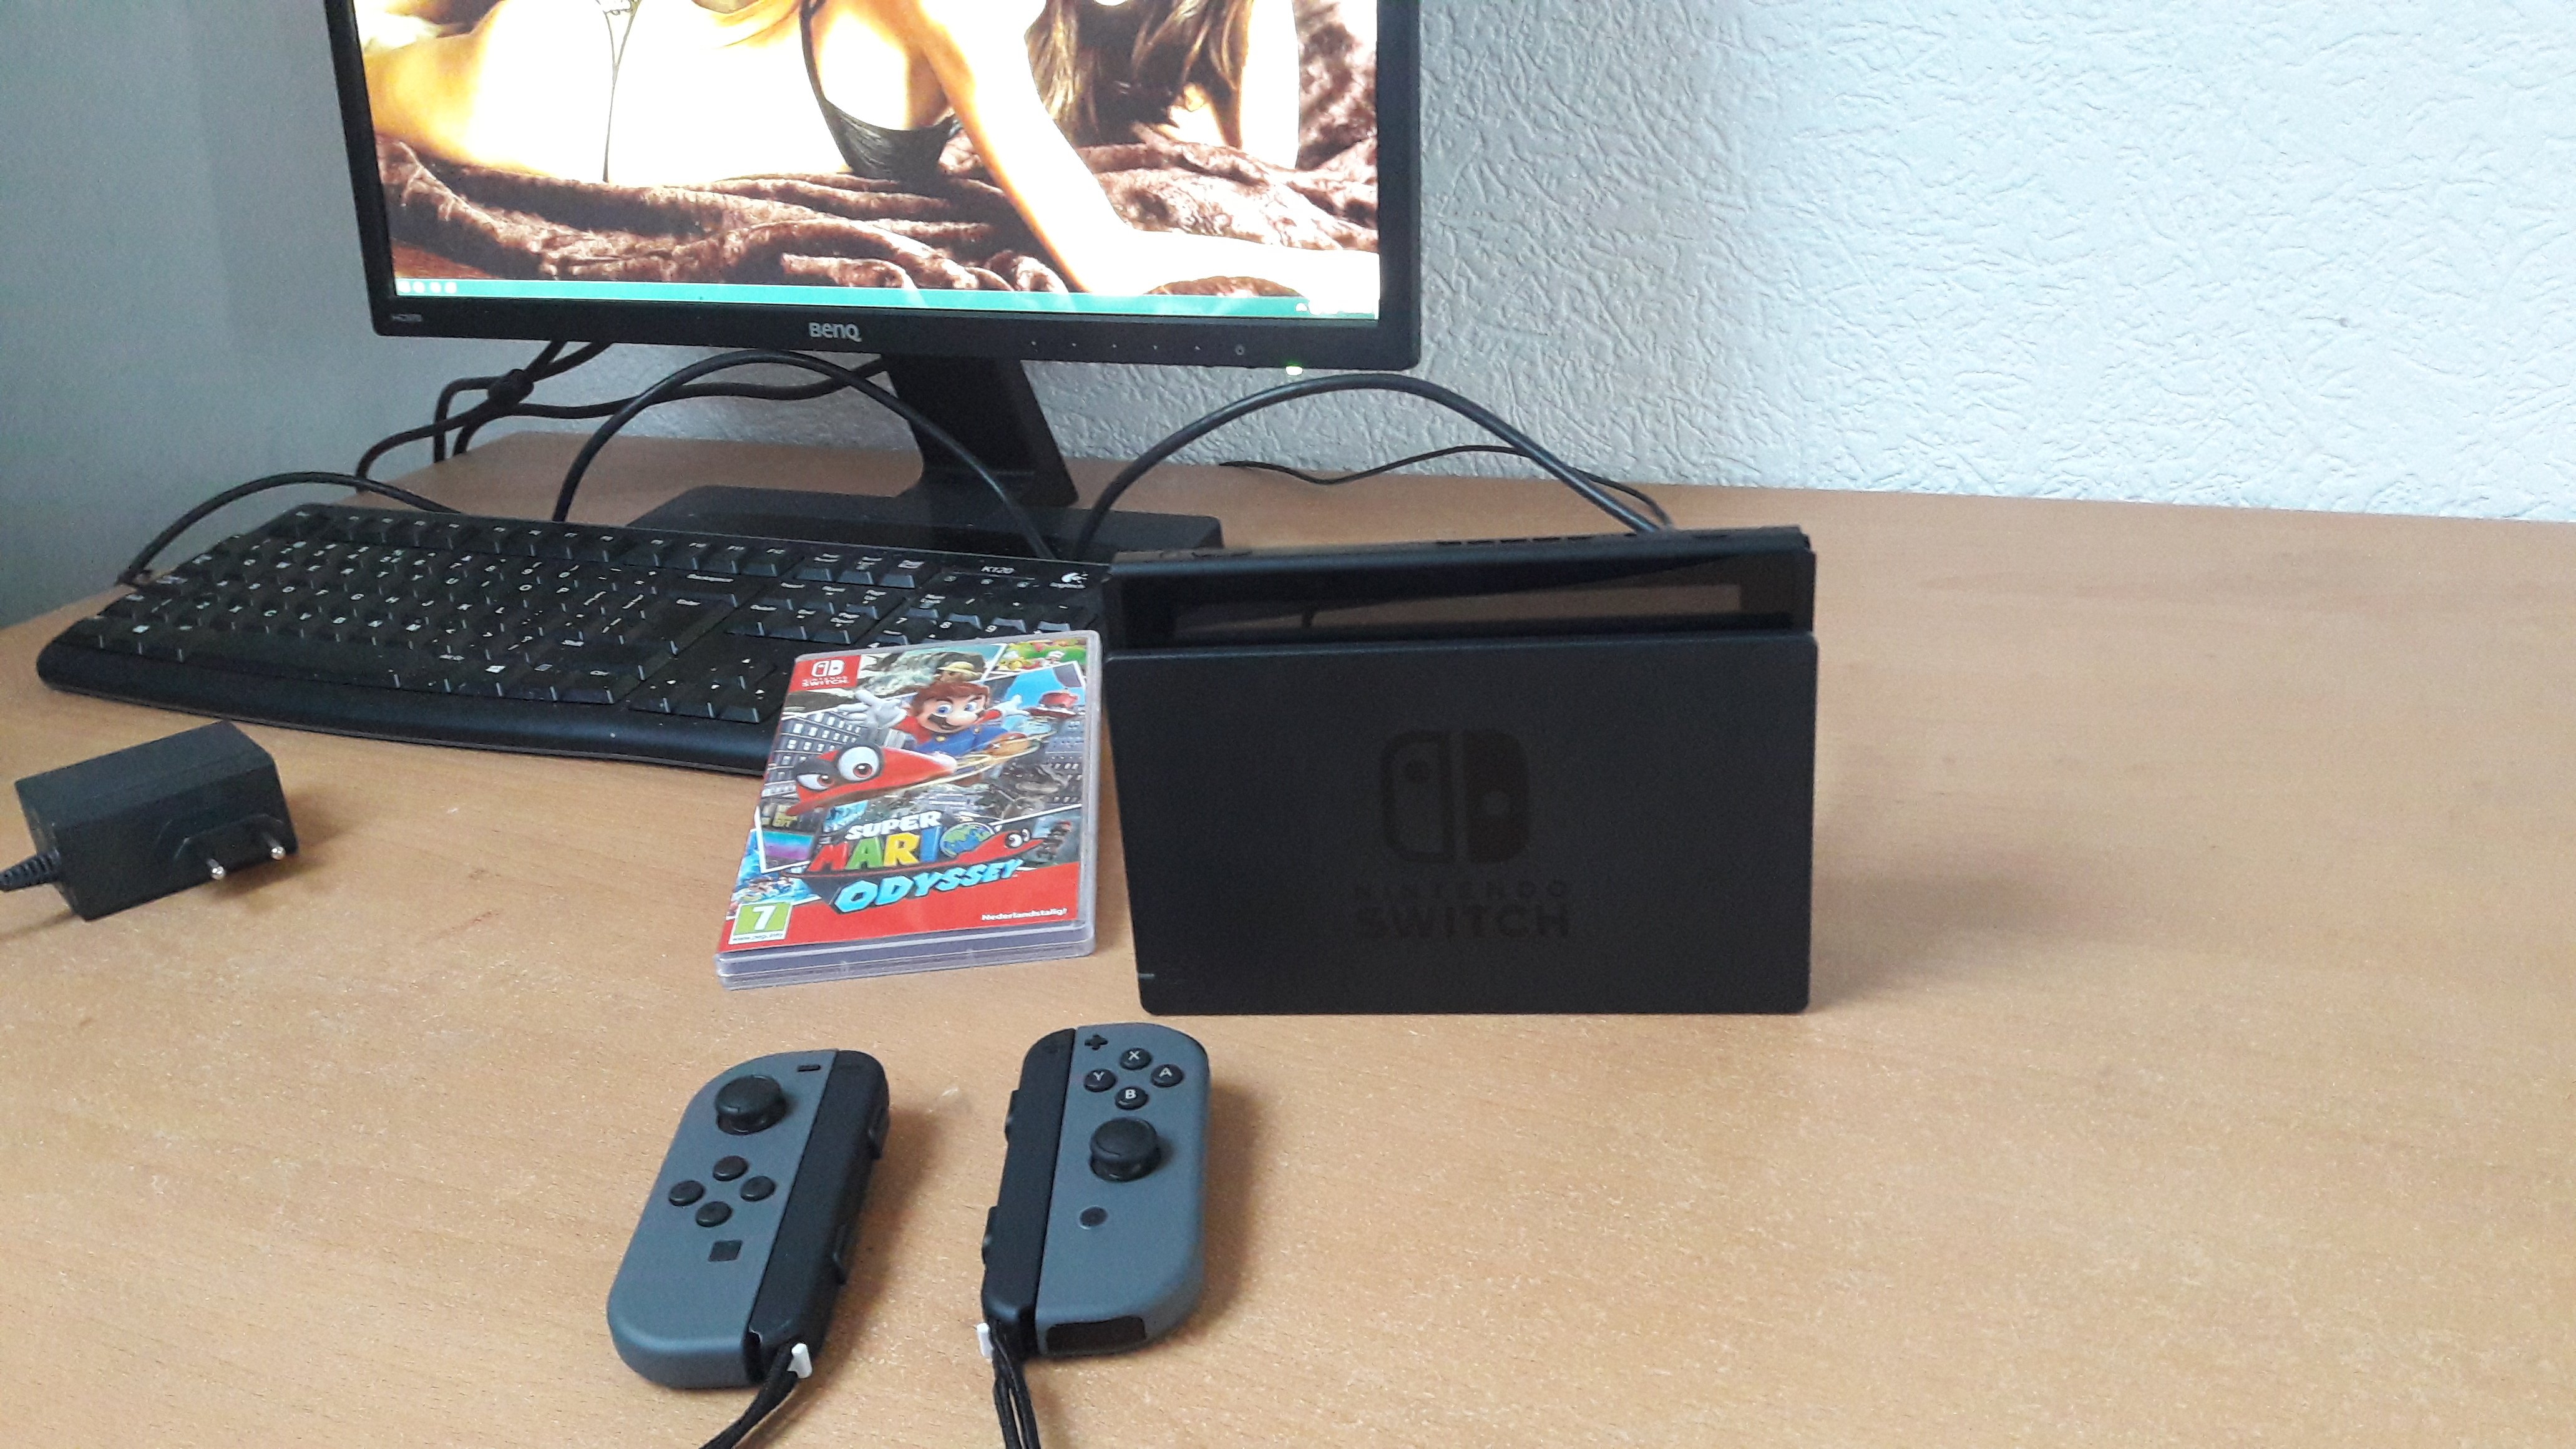 Nintendo Switch console in docking station